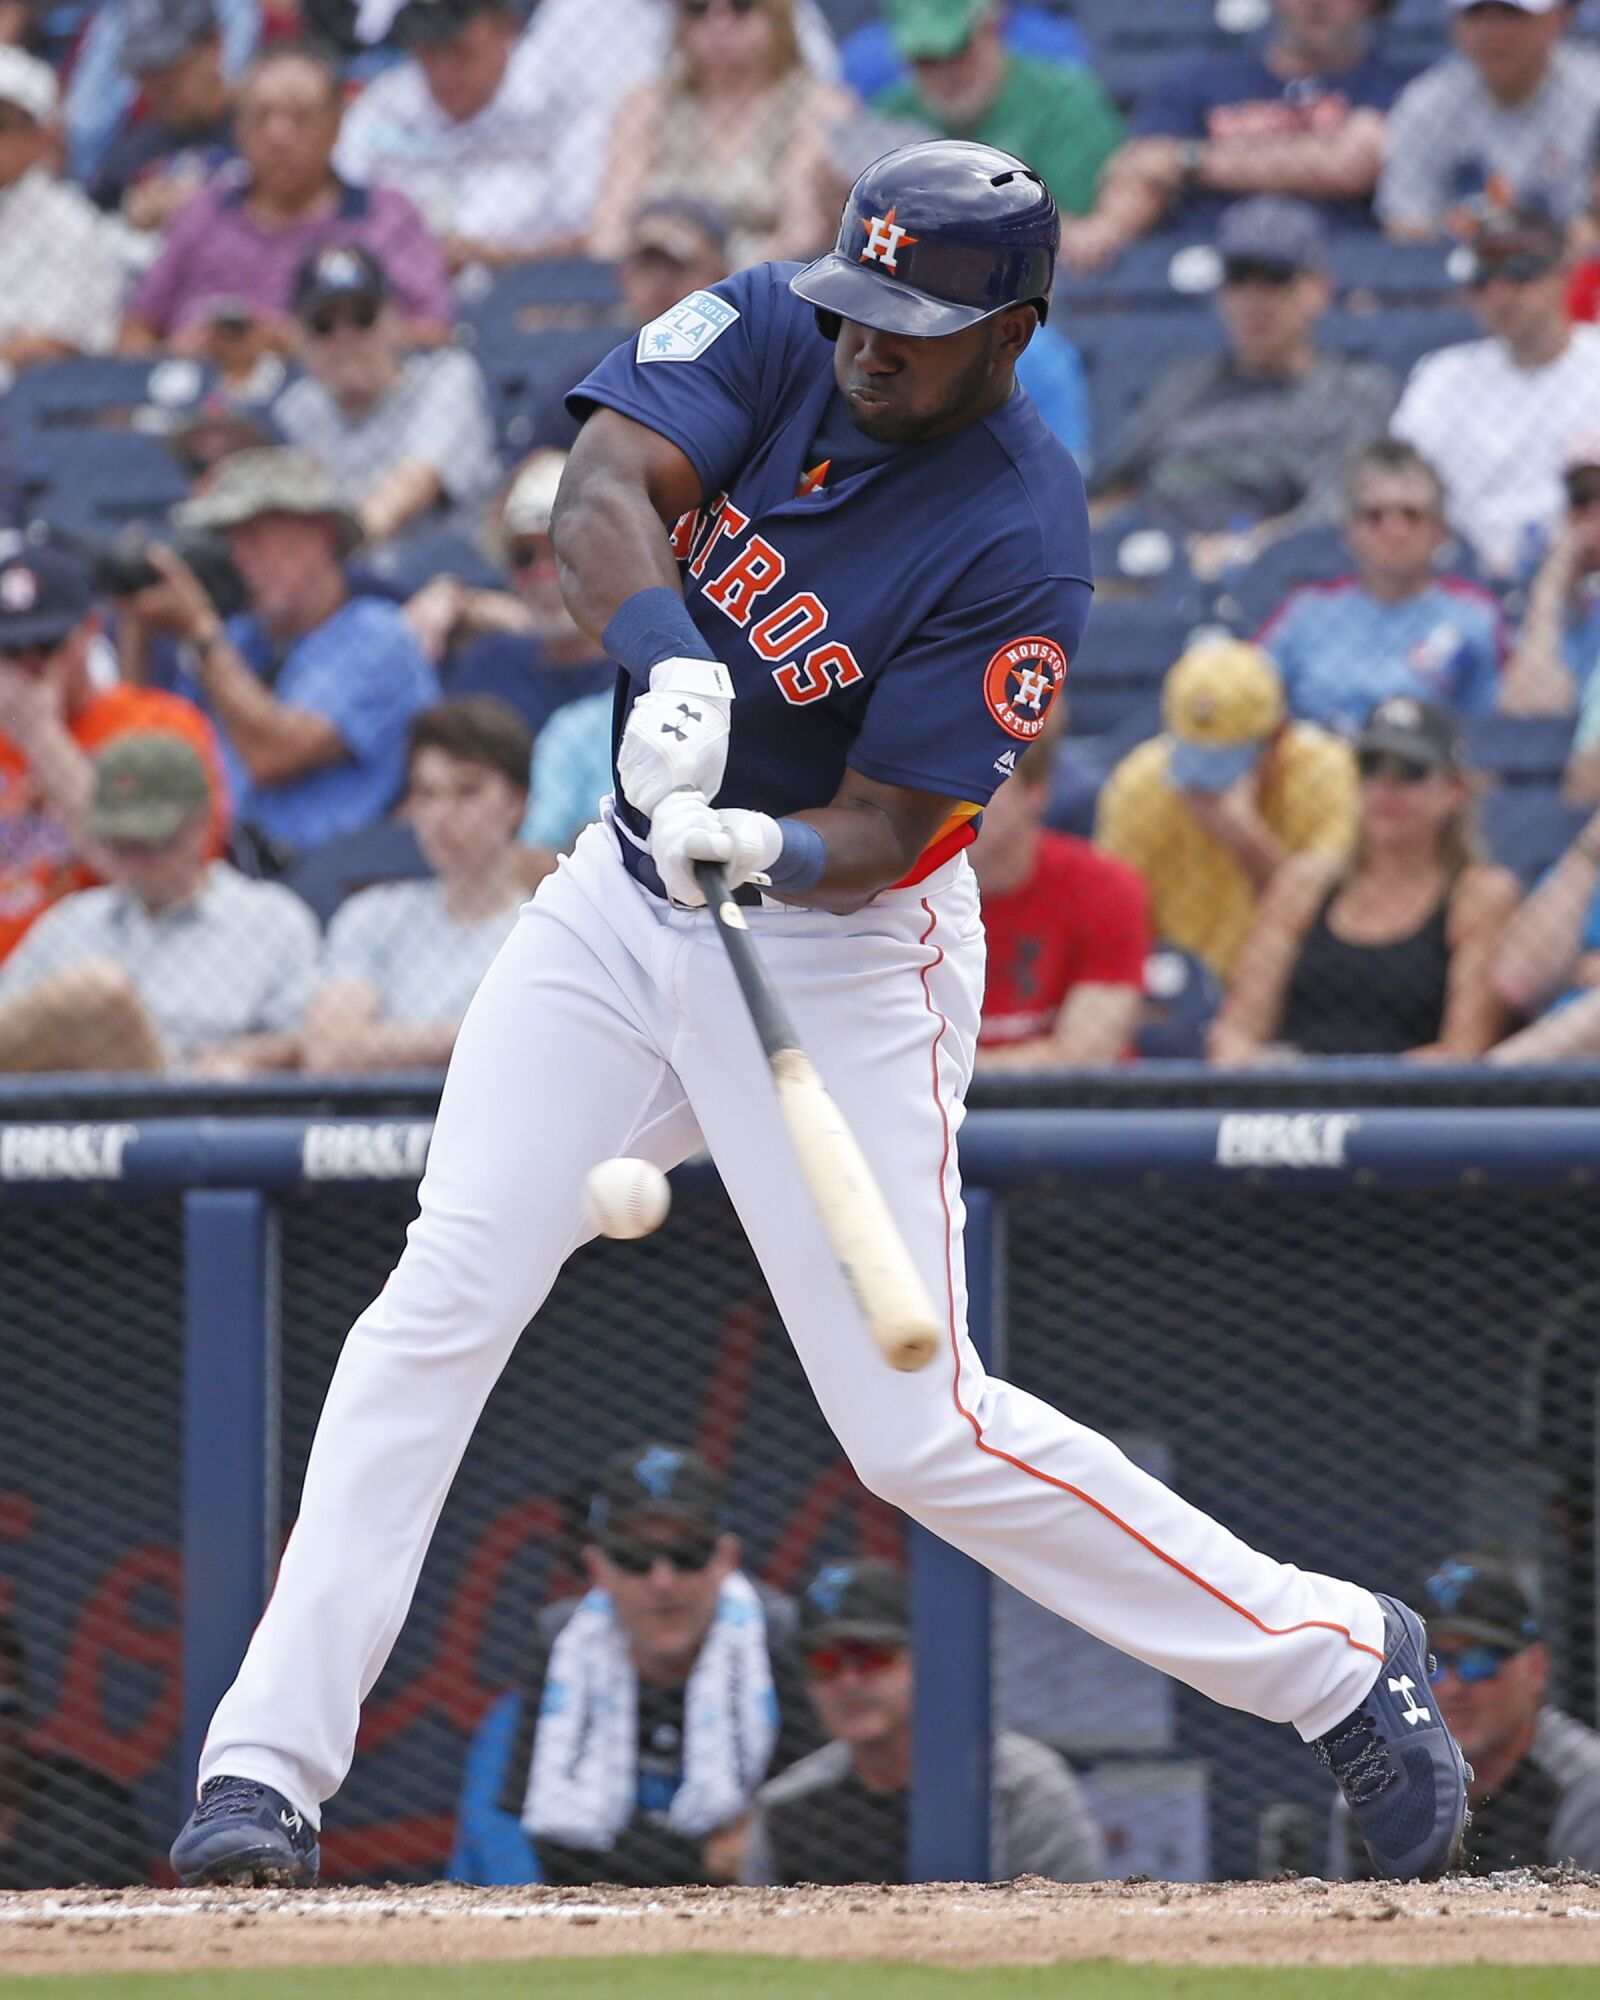 Astros: Top Prospect Yordan Alvarez has impressed In Spring Training